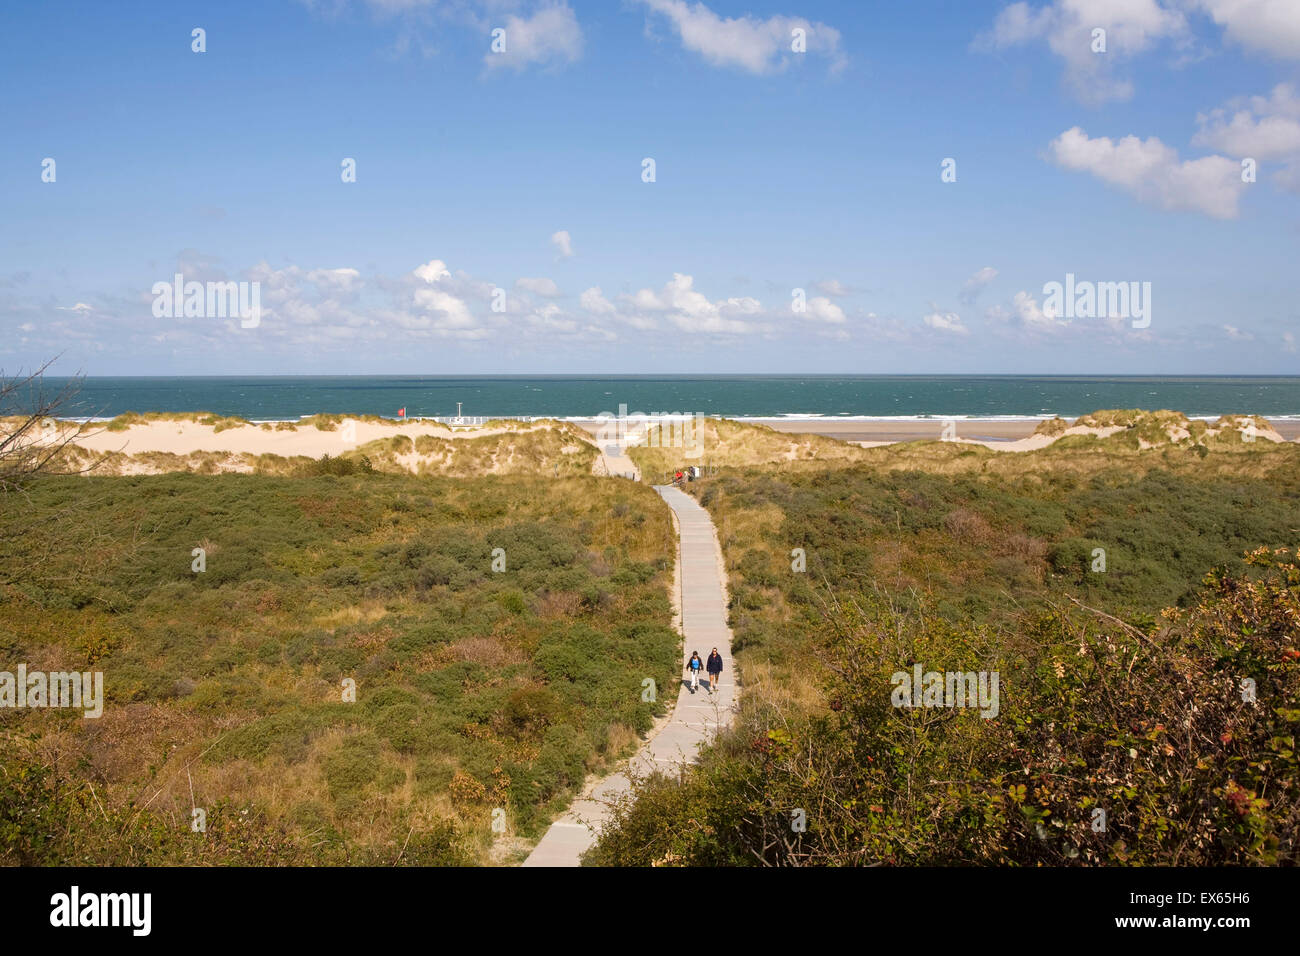 Europe, Netherlands, dunes and the beach between Oostkapelle and Vrouwenpolder on the peninsula Walcheren. - Stock Image